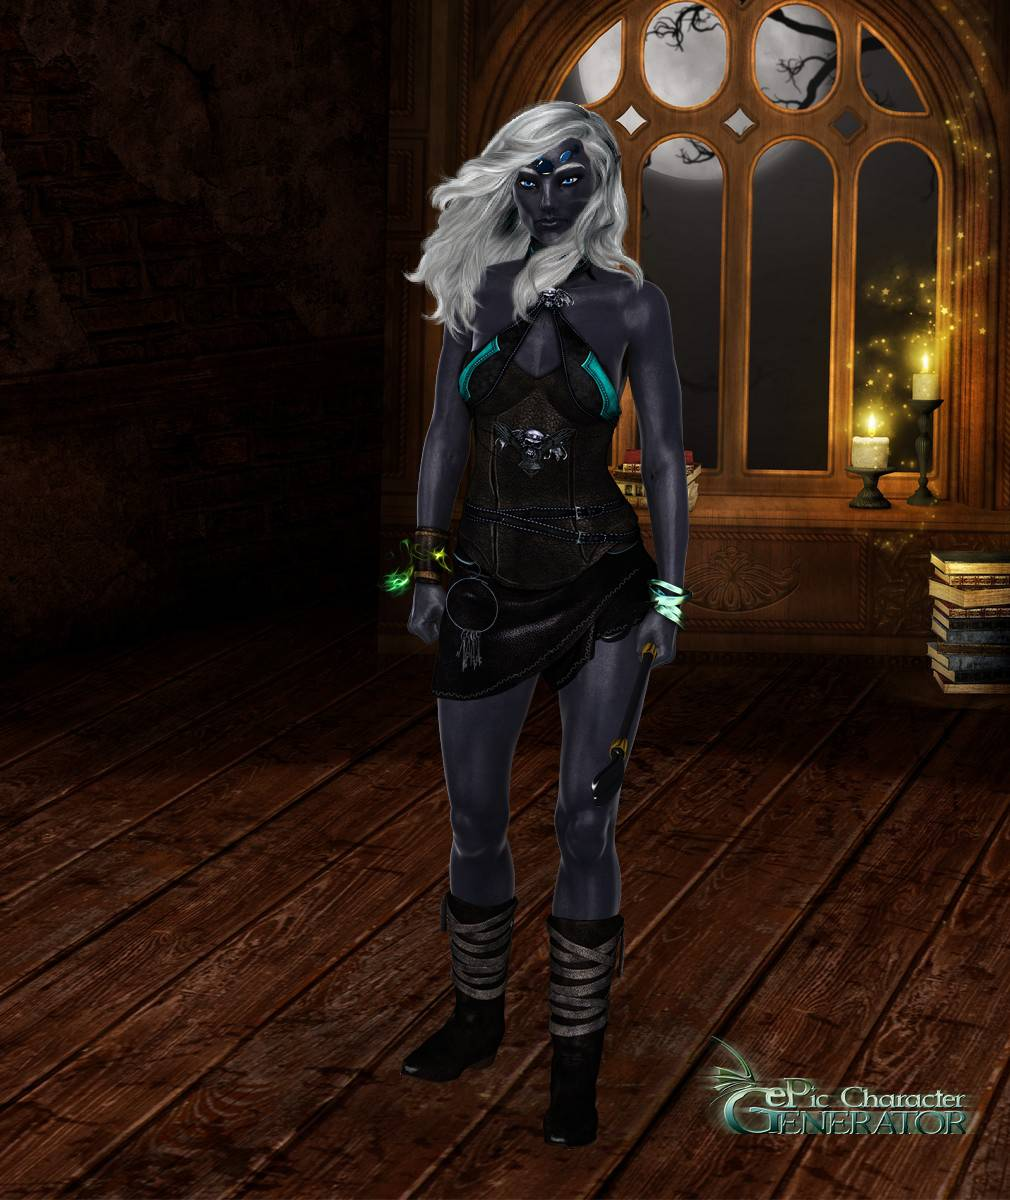 ePic Character Generator Season 2 Female Drow Spellcaster Screenshot 13